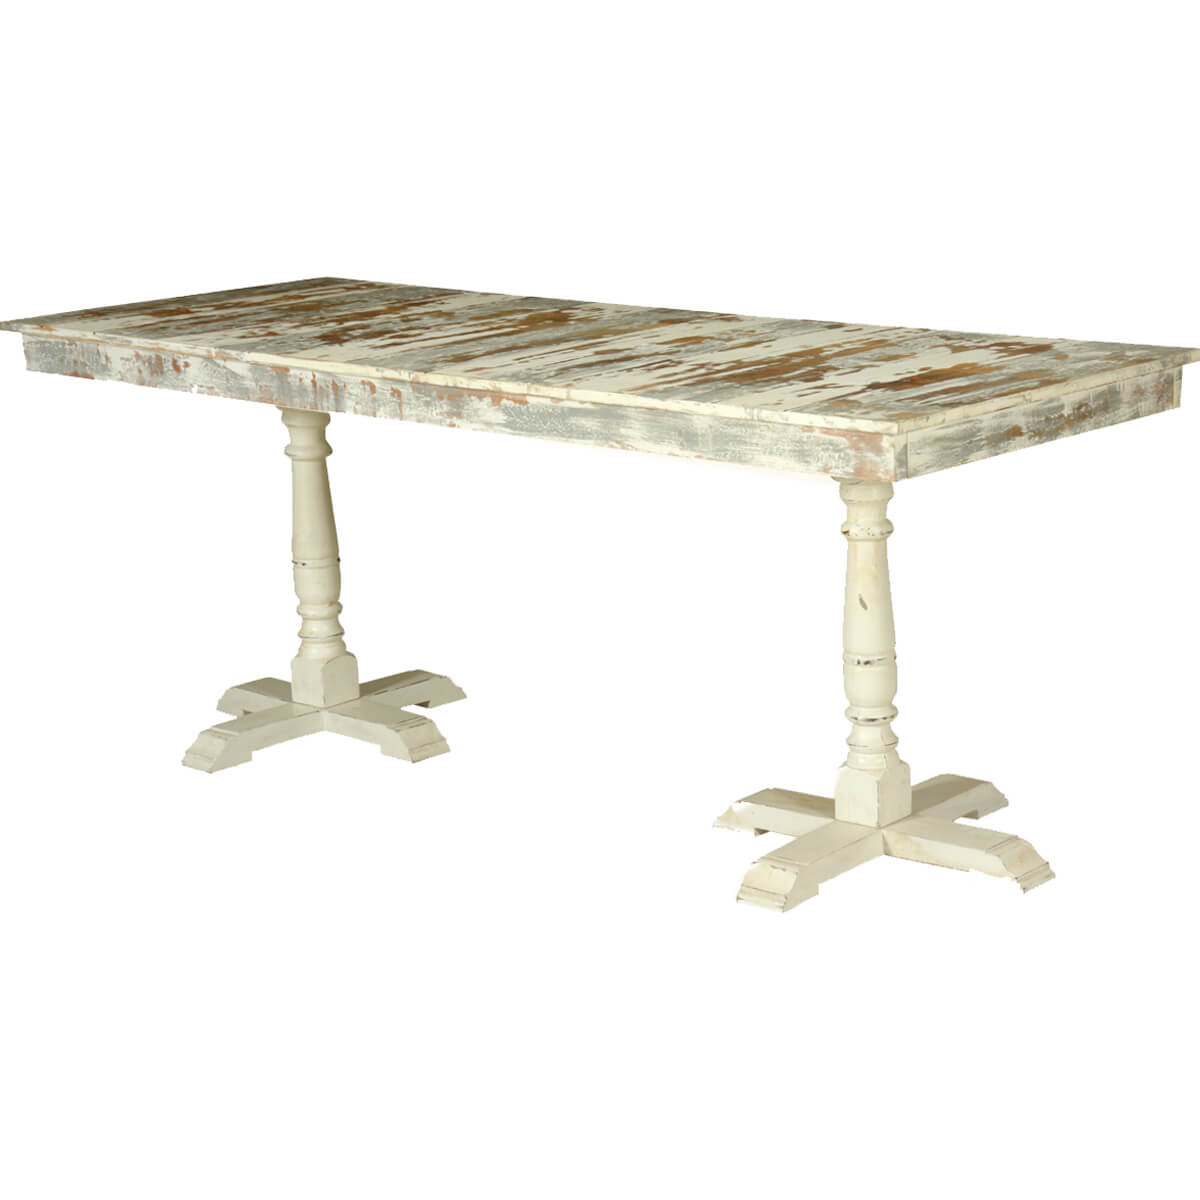 Grey white distressed mango wood 78 5 2 pedestal dining for Distressed white dining table